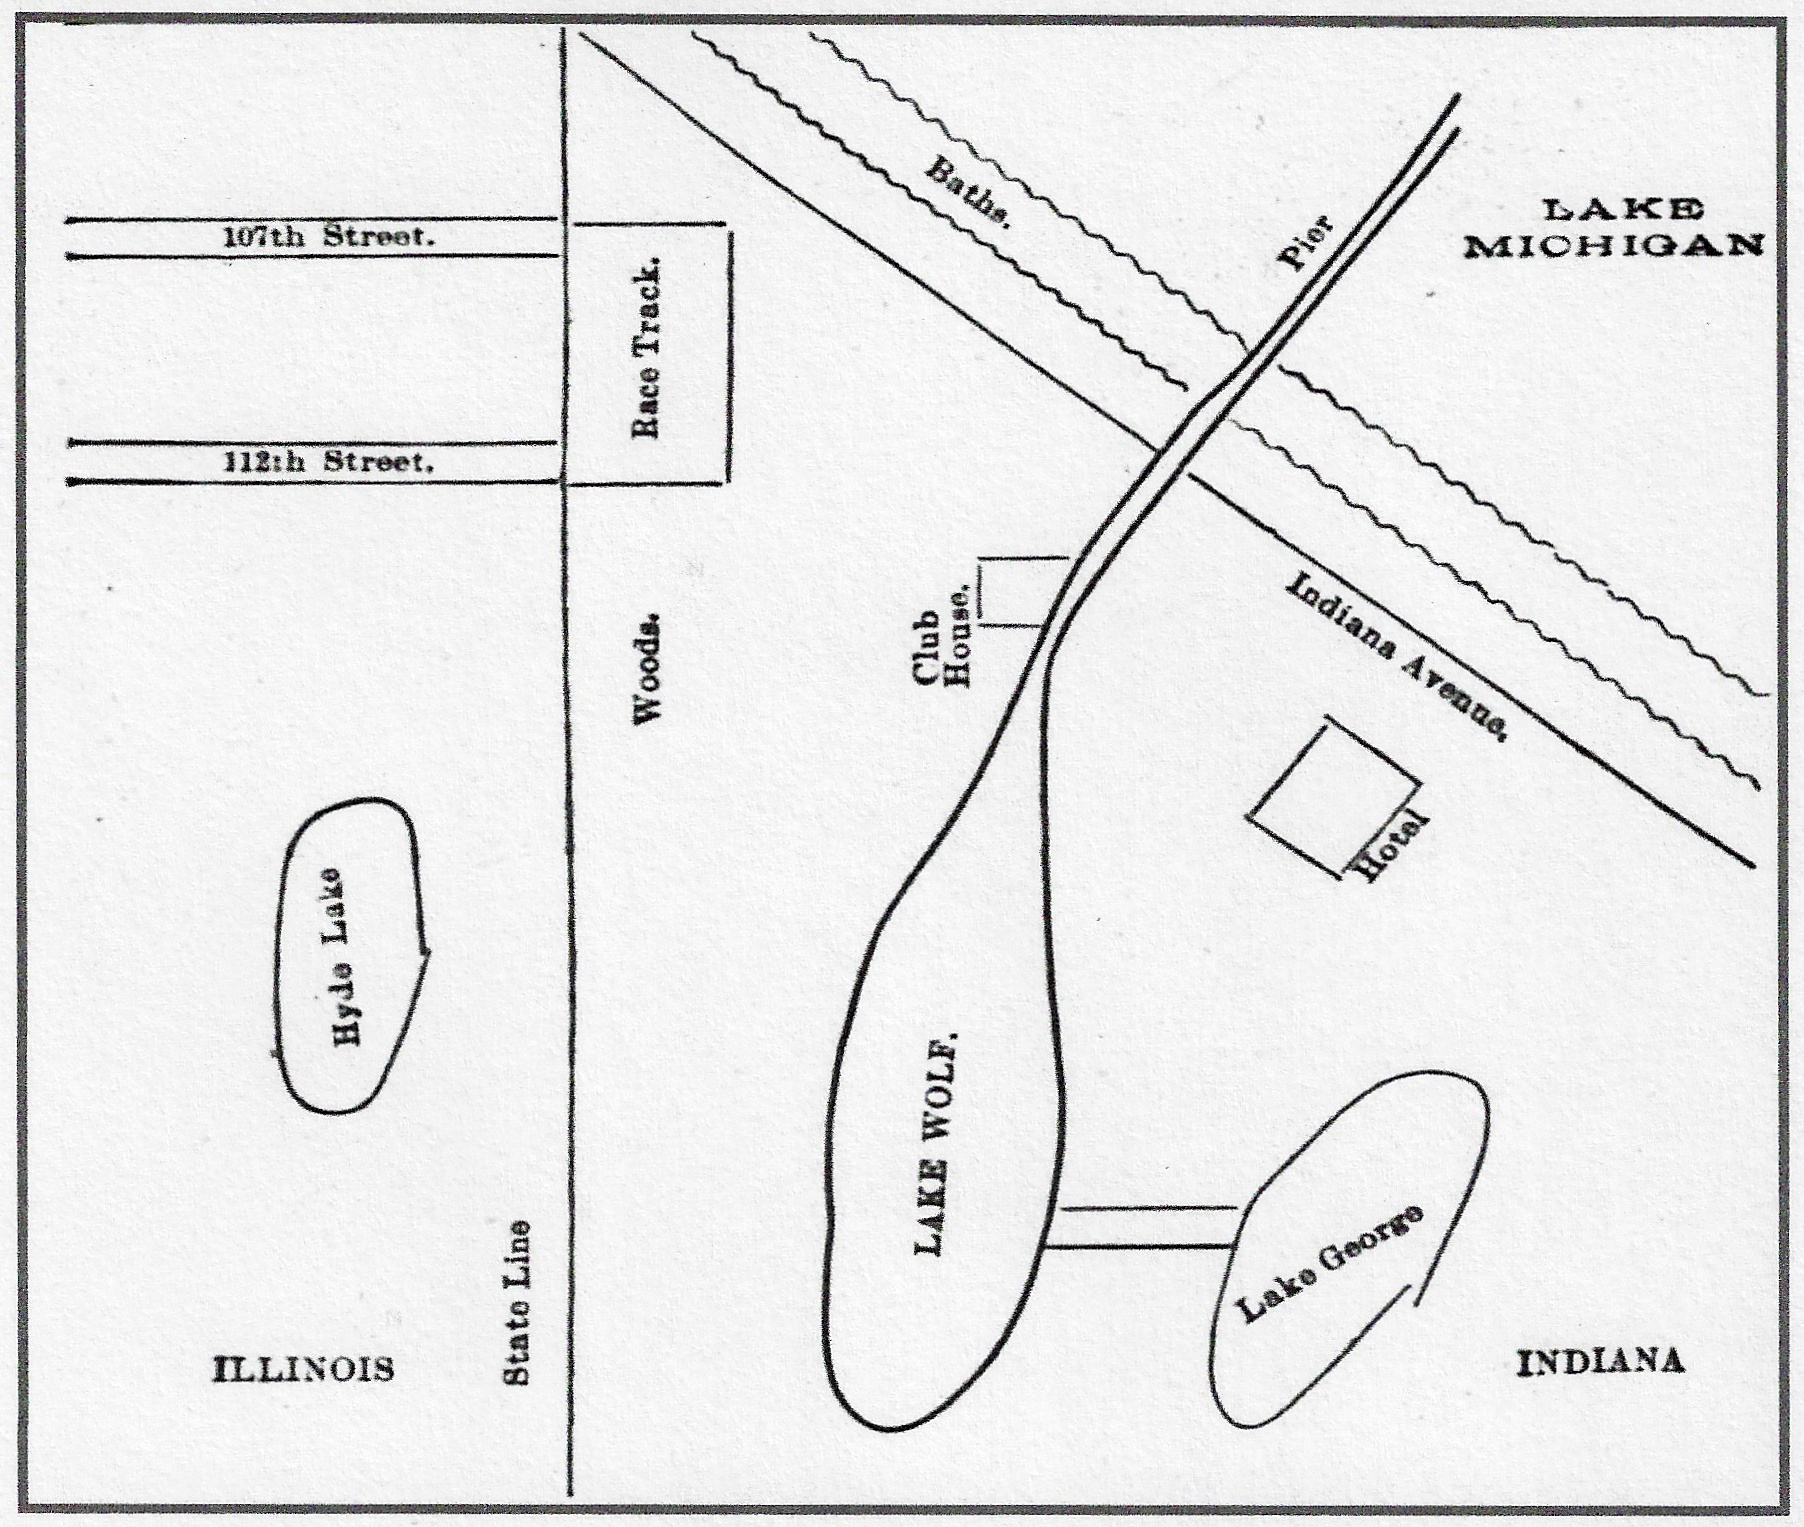 This map, from an 1892 edition of the Chicago Inter-Ocean newspaper isn't precisely drawn. Wolf Lake, for instance, is in both Illinois and Indiana. But it gives a rough idea of not only where the race track was located, but also for some of the plans the developers of the track initially talked about, such as the hotel and club house. Hyde Lake no longer exists, filled in many years ago, but the woods south of the track remain as the Cook County Forest Preserve. The land where the track stood was very sandy, with numerous small oak trees on it.